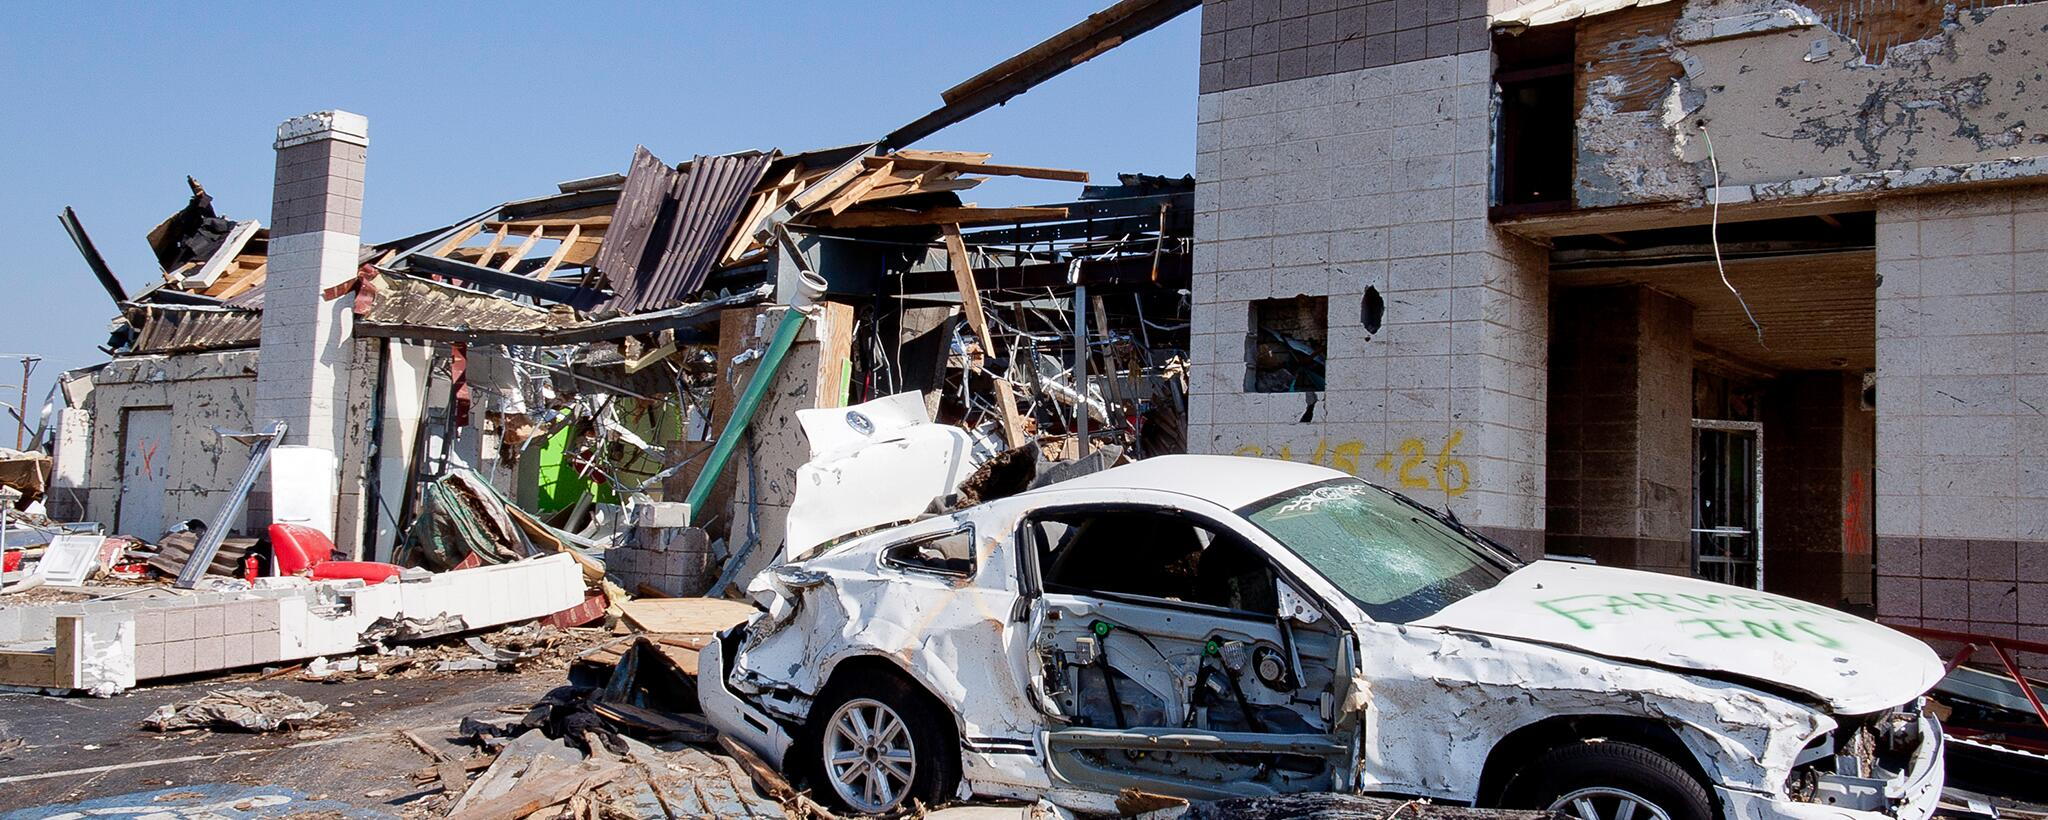 A building destroyed by a hurricane with a white car missing a door due to damage